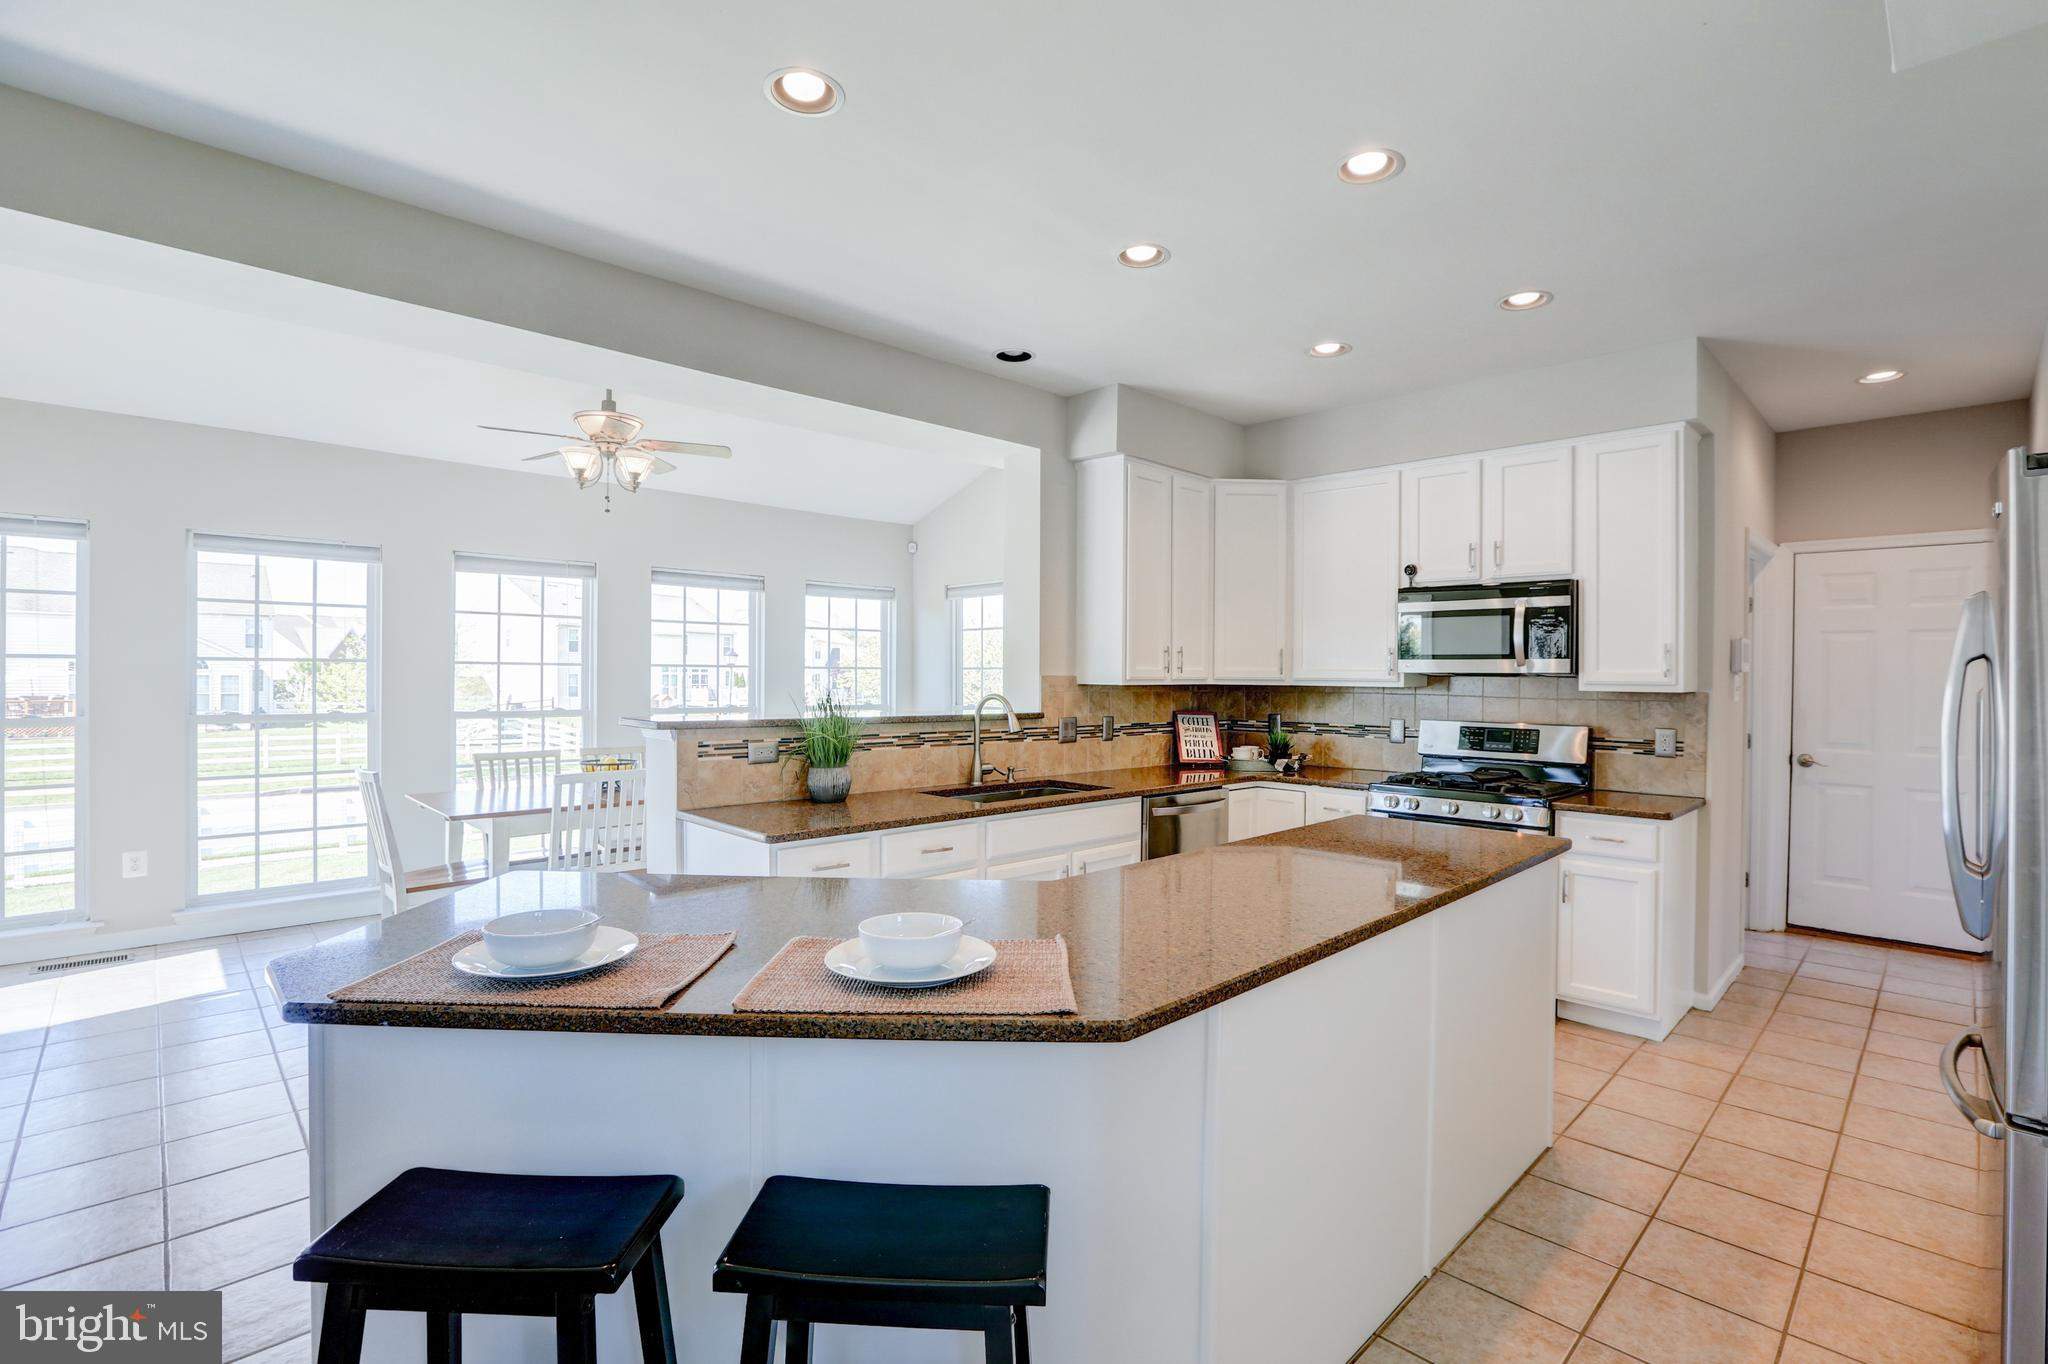 """One-of-a-kind is the best way to describe this new listing located in The Estates at Dove Run in the heart of Middletown. Not too often do we see a home so immaculate, so well cared for, so tastefully upgraded... and for that reason this home is truly in a class of its own! Starting from the outside, you'll appreciate its tidy landscape and attractive facade.  The atrium window over the front door is captivating with its size and ability to bring the natural light into the entrance of the home.  The rear of the home has a well designed trex deck allowing dual access both from the fenced portion of the yard, and the unfenced area.  Fully enclosed and LARGE, there is plenty of space back there to dream up a pool, shed, playground or more landscaping.  Enter the home and you'll be greeted with freshly painted walls-neutral in color, as well as a 2-story grand foyer.  Either side of you are the formal dining and living rooms, both well-lit with floor to ceiling windows and brand new flooring.    The rear kitchen is open-concept to a large family room and sunroom, and easy access to the rear deck/yard for entertaining!  The kitchen will entice you to cook more meals at home with its large counter spaces, gas cooking and double oven.  Also features white 42"""" cabinets, granite, and a tile backsplash!  Just down the hall is a full laundry room with washtub, and access to your spacious 2-car garage.  The upstairs features 4 bedrooms and 2 bathrooms, all new carpeting, and spacious storage closets.  The master suite has an enormous walk-in closet and garden bathroom~ (you may want to quarantine right in here).  But the absolute BEST part of this home is definitely the fully finished basement!  Custom laminate flooring, industrial rails and design features make it a unique experience that will quickly become your FAVORITE hang-out.   There is a bathroom down there as well as a movie theater, bar, exercise area, full exit door, and extra storage.   It could easily become an in-"""